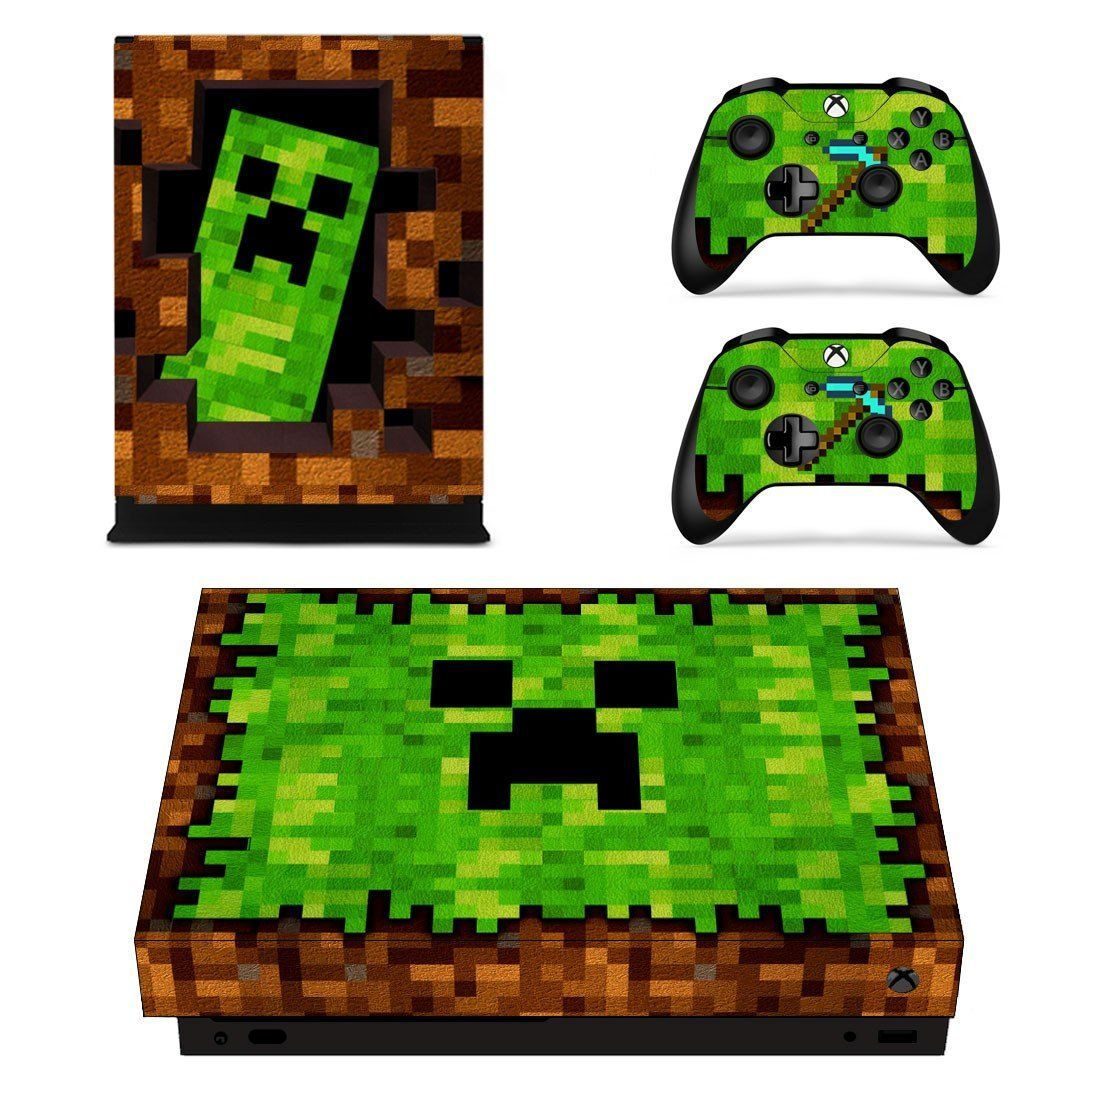 c9ffb3f16be66729b649b80d5378459f - How To Get A Skin On Minecraft Xbox One